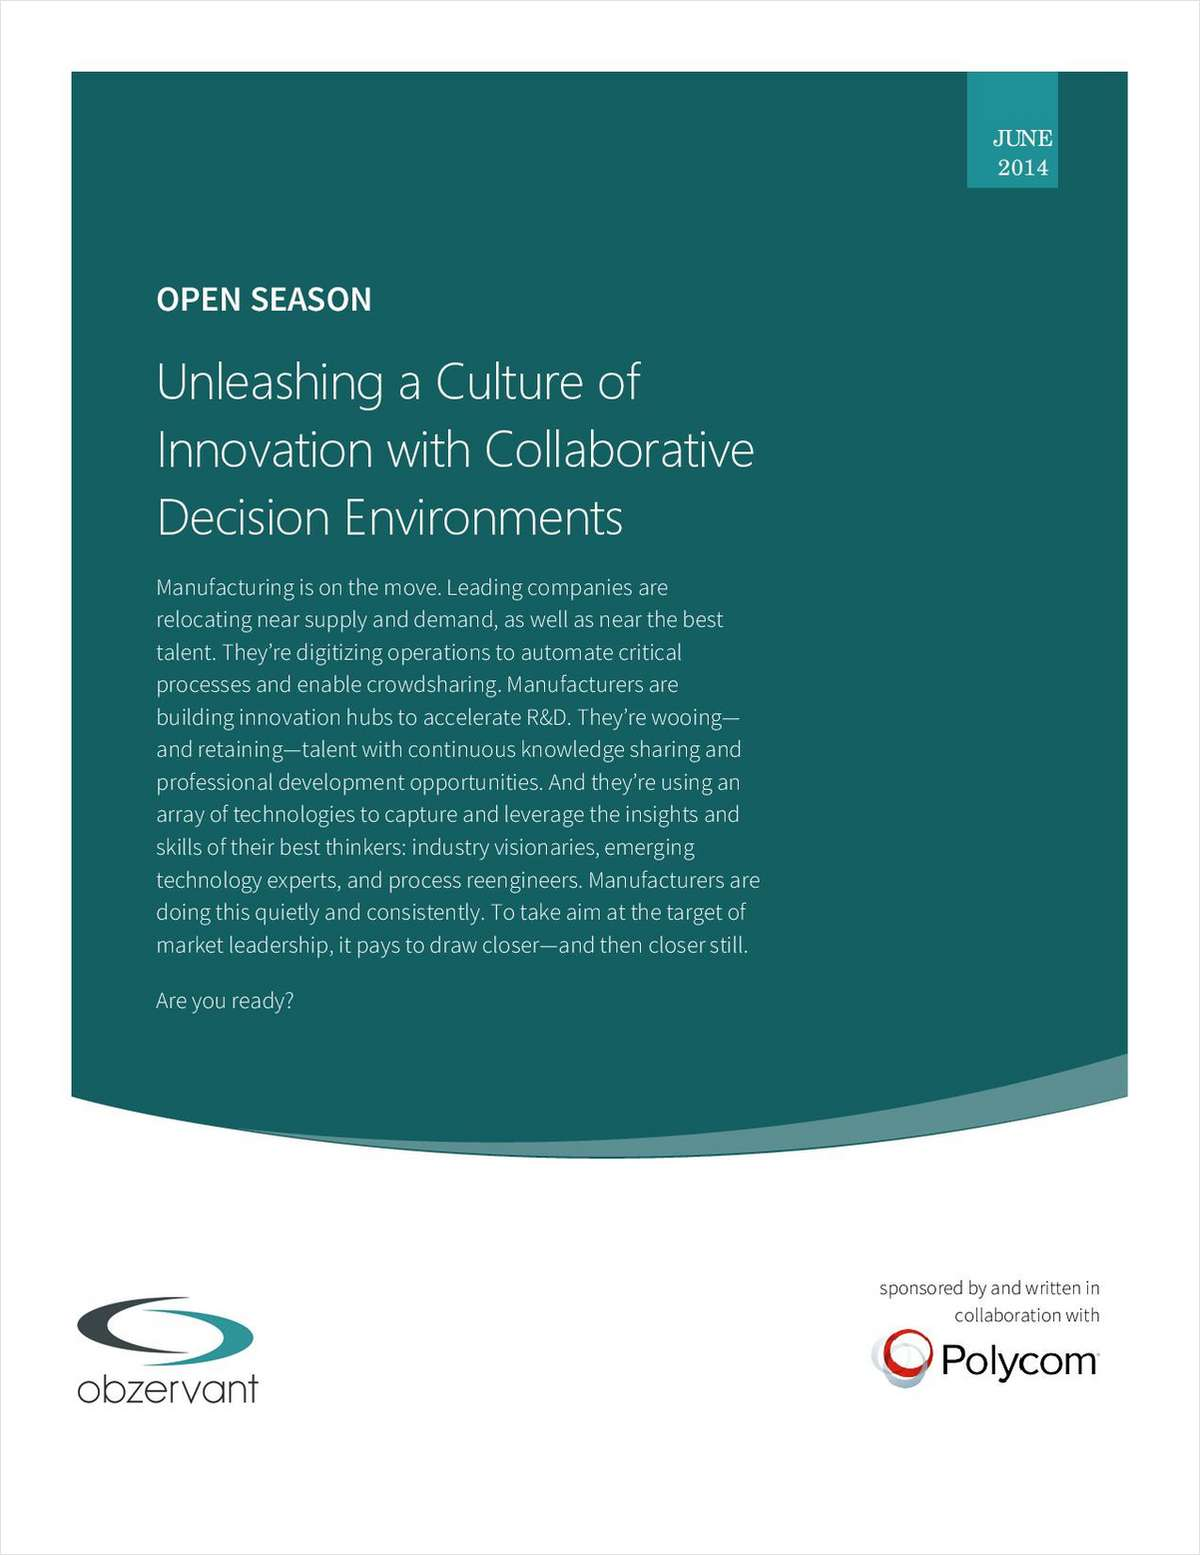 Open Season: Unleashing a Culture of Innovation with Collaborative Decision Environments